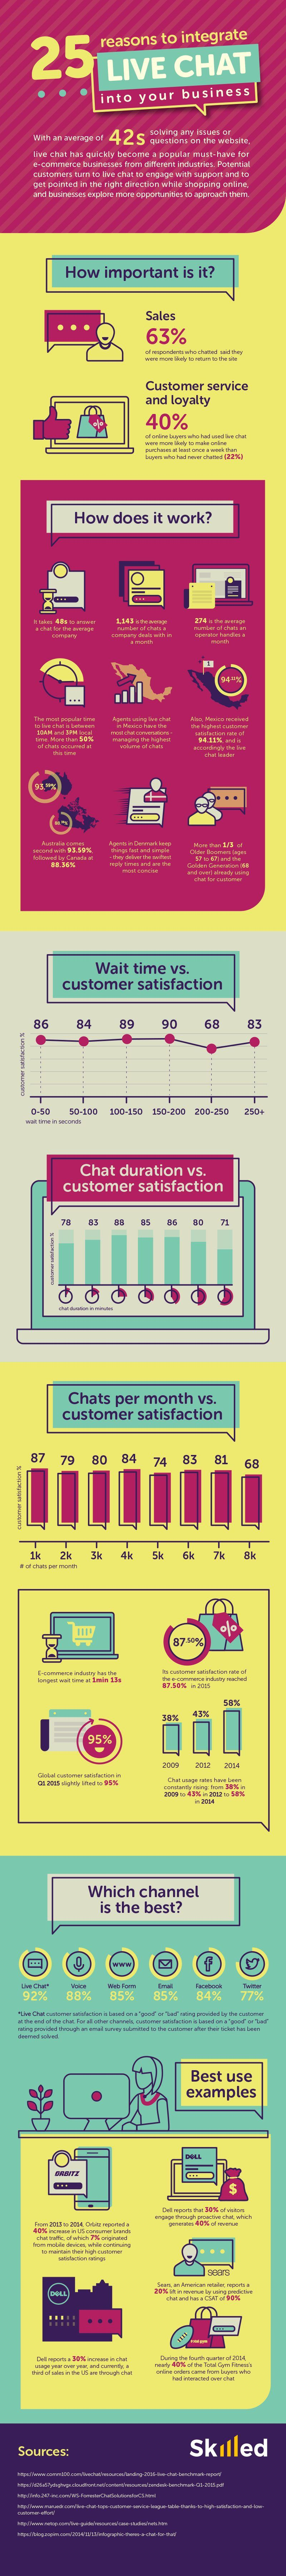 reasons to integrate live chat into your business website